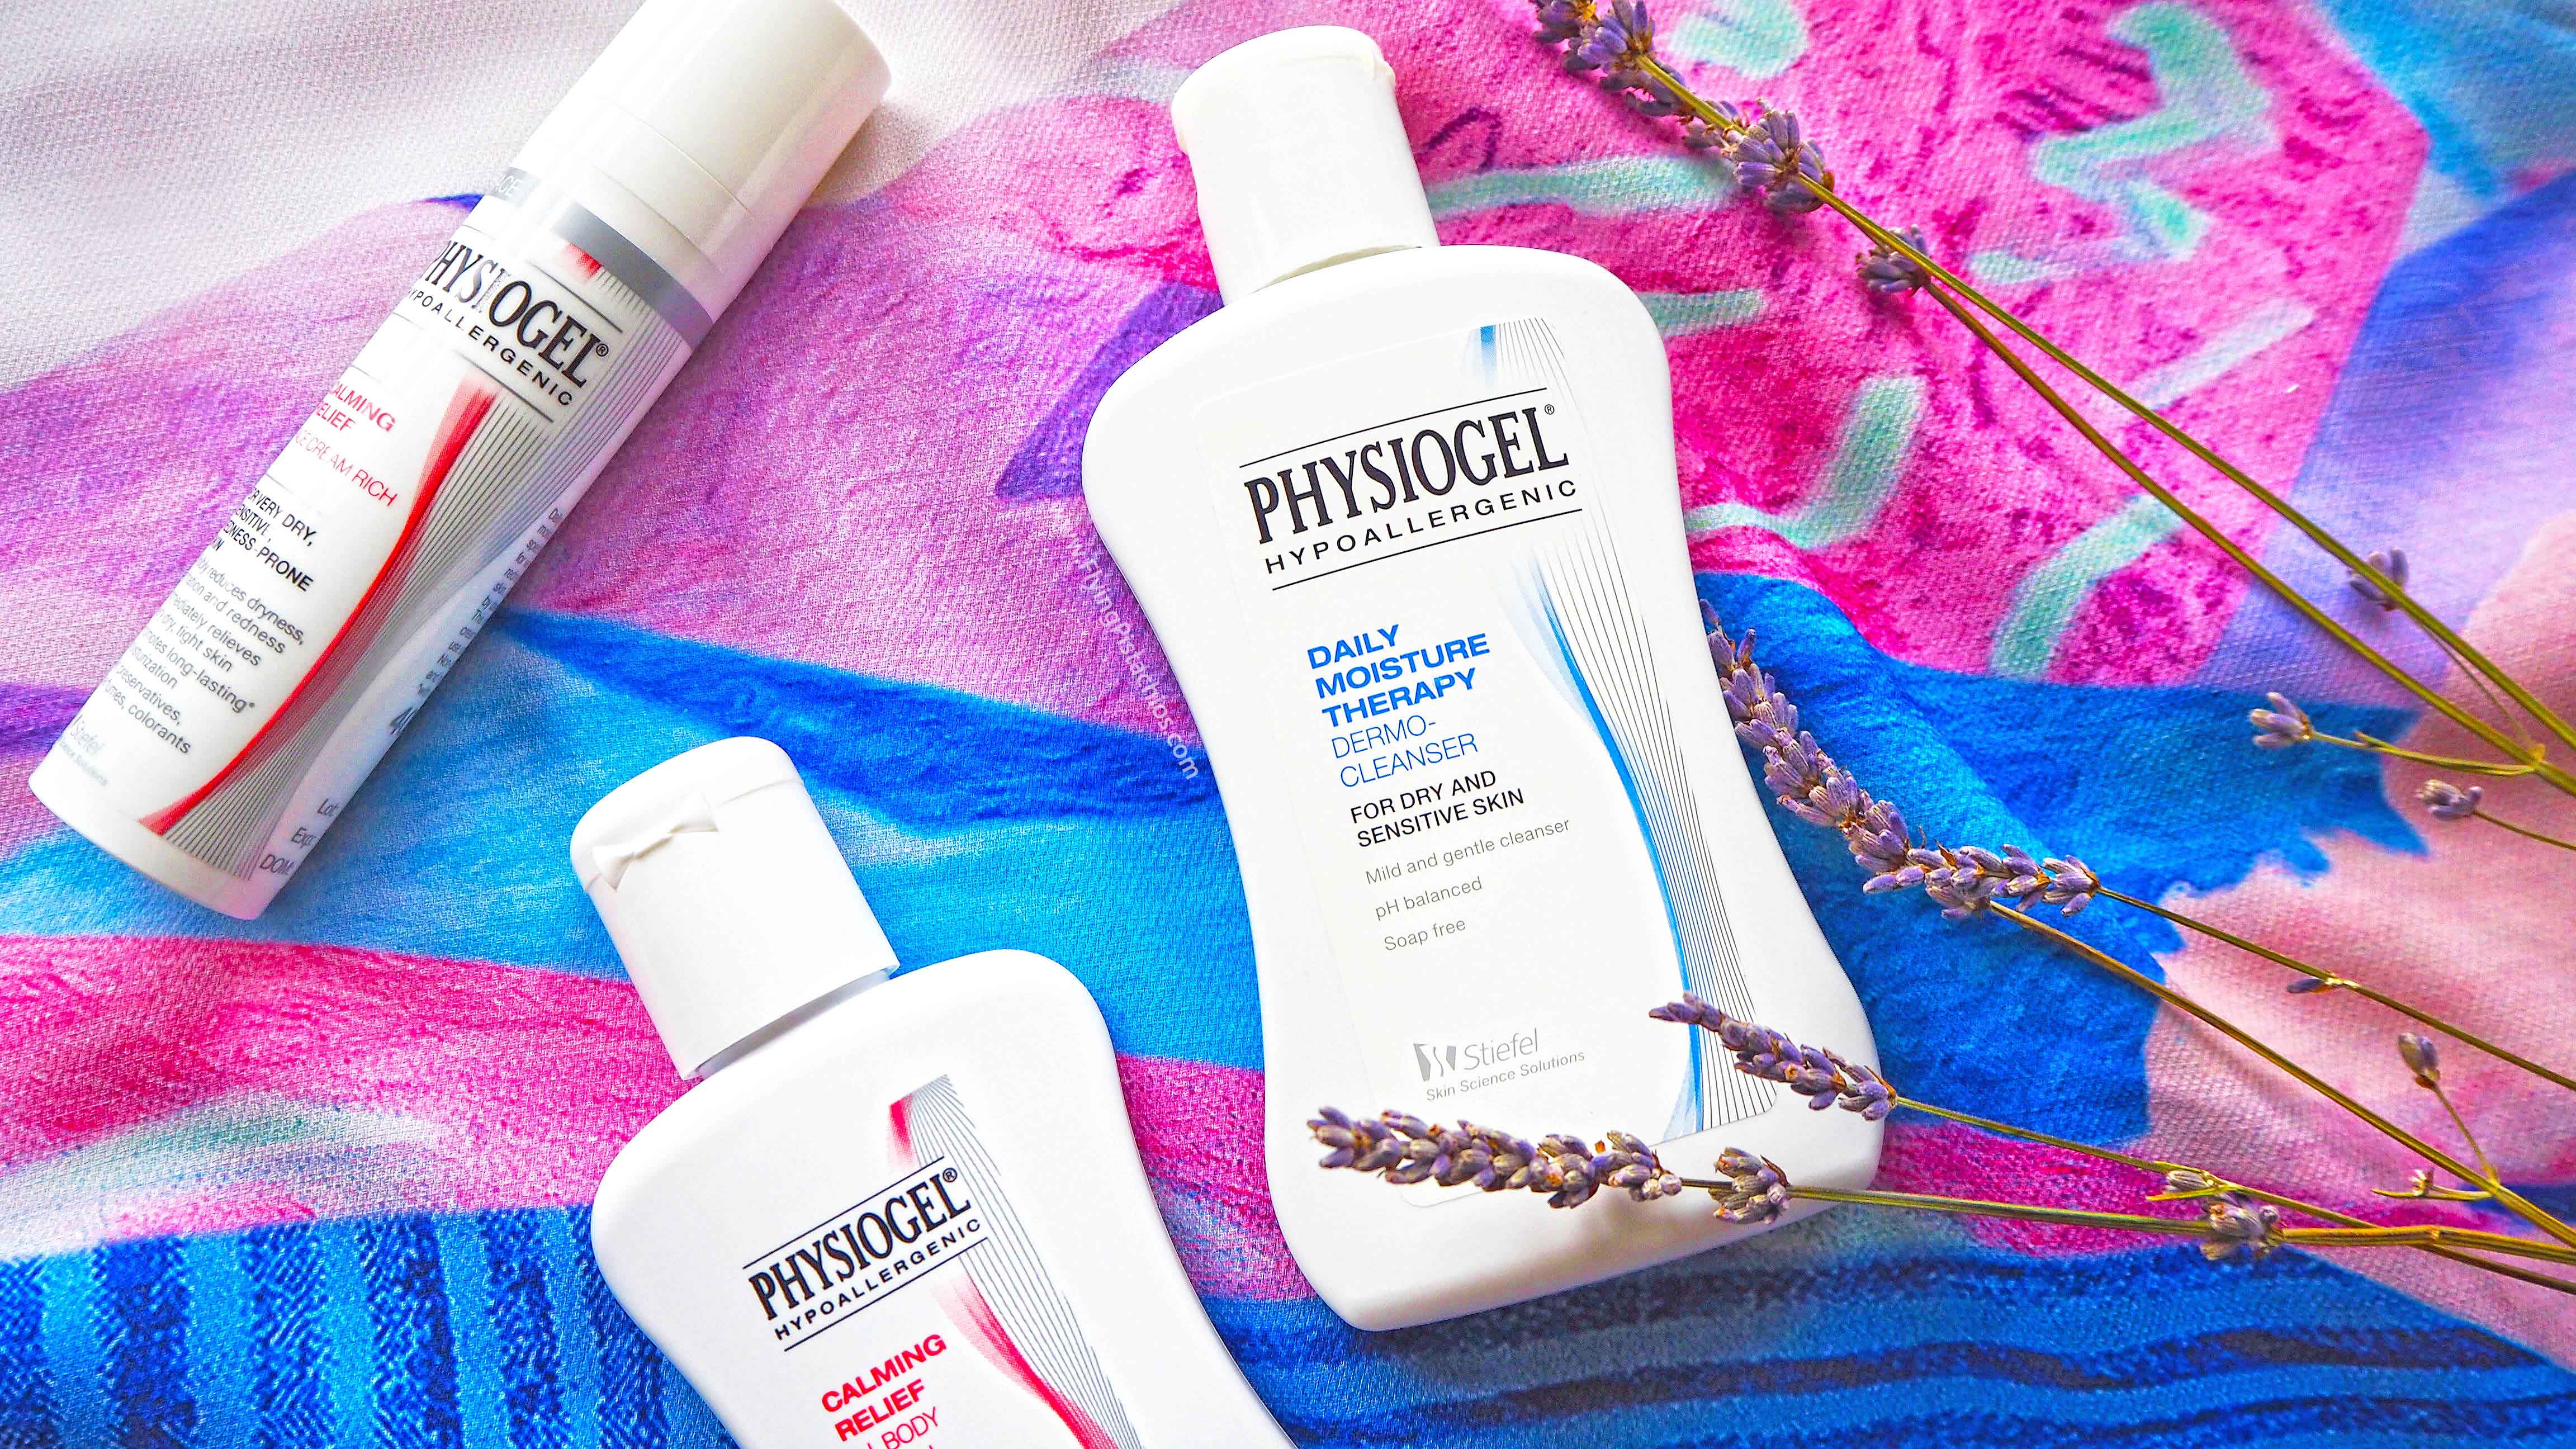 Physiogel Review